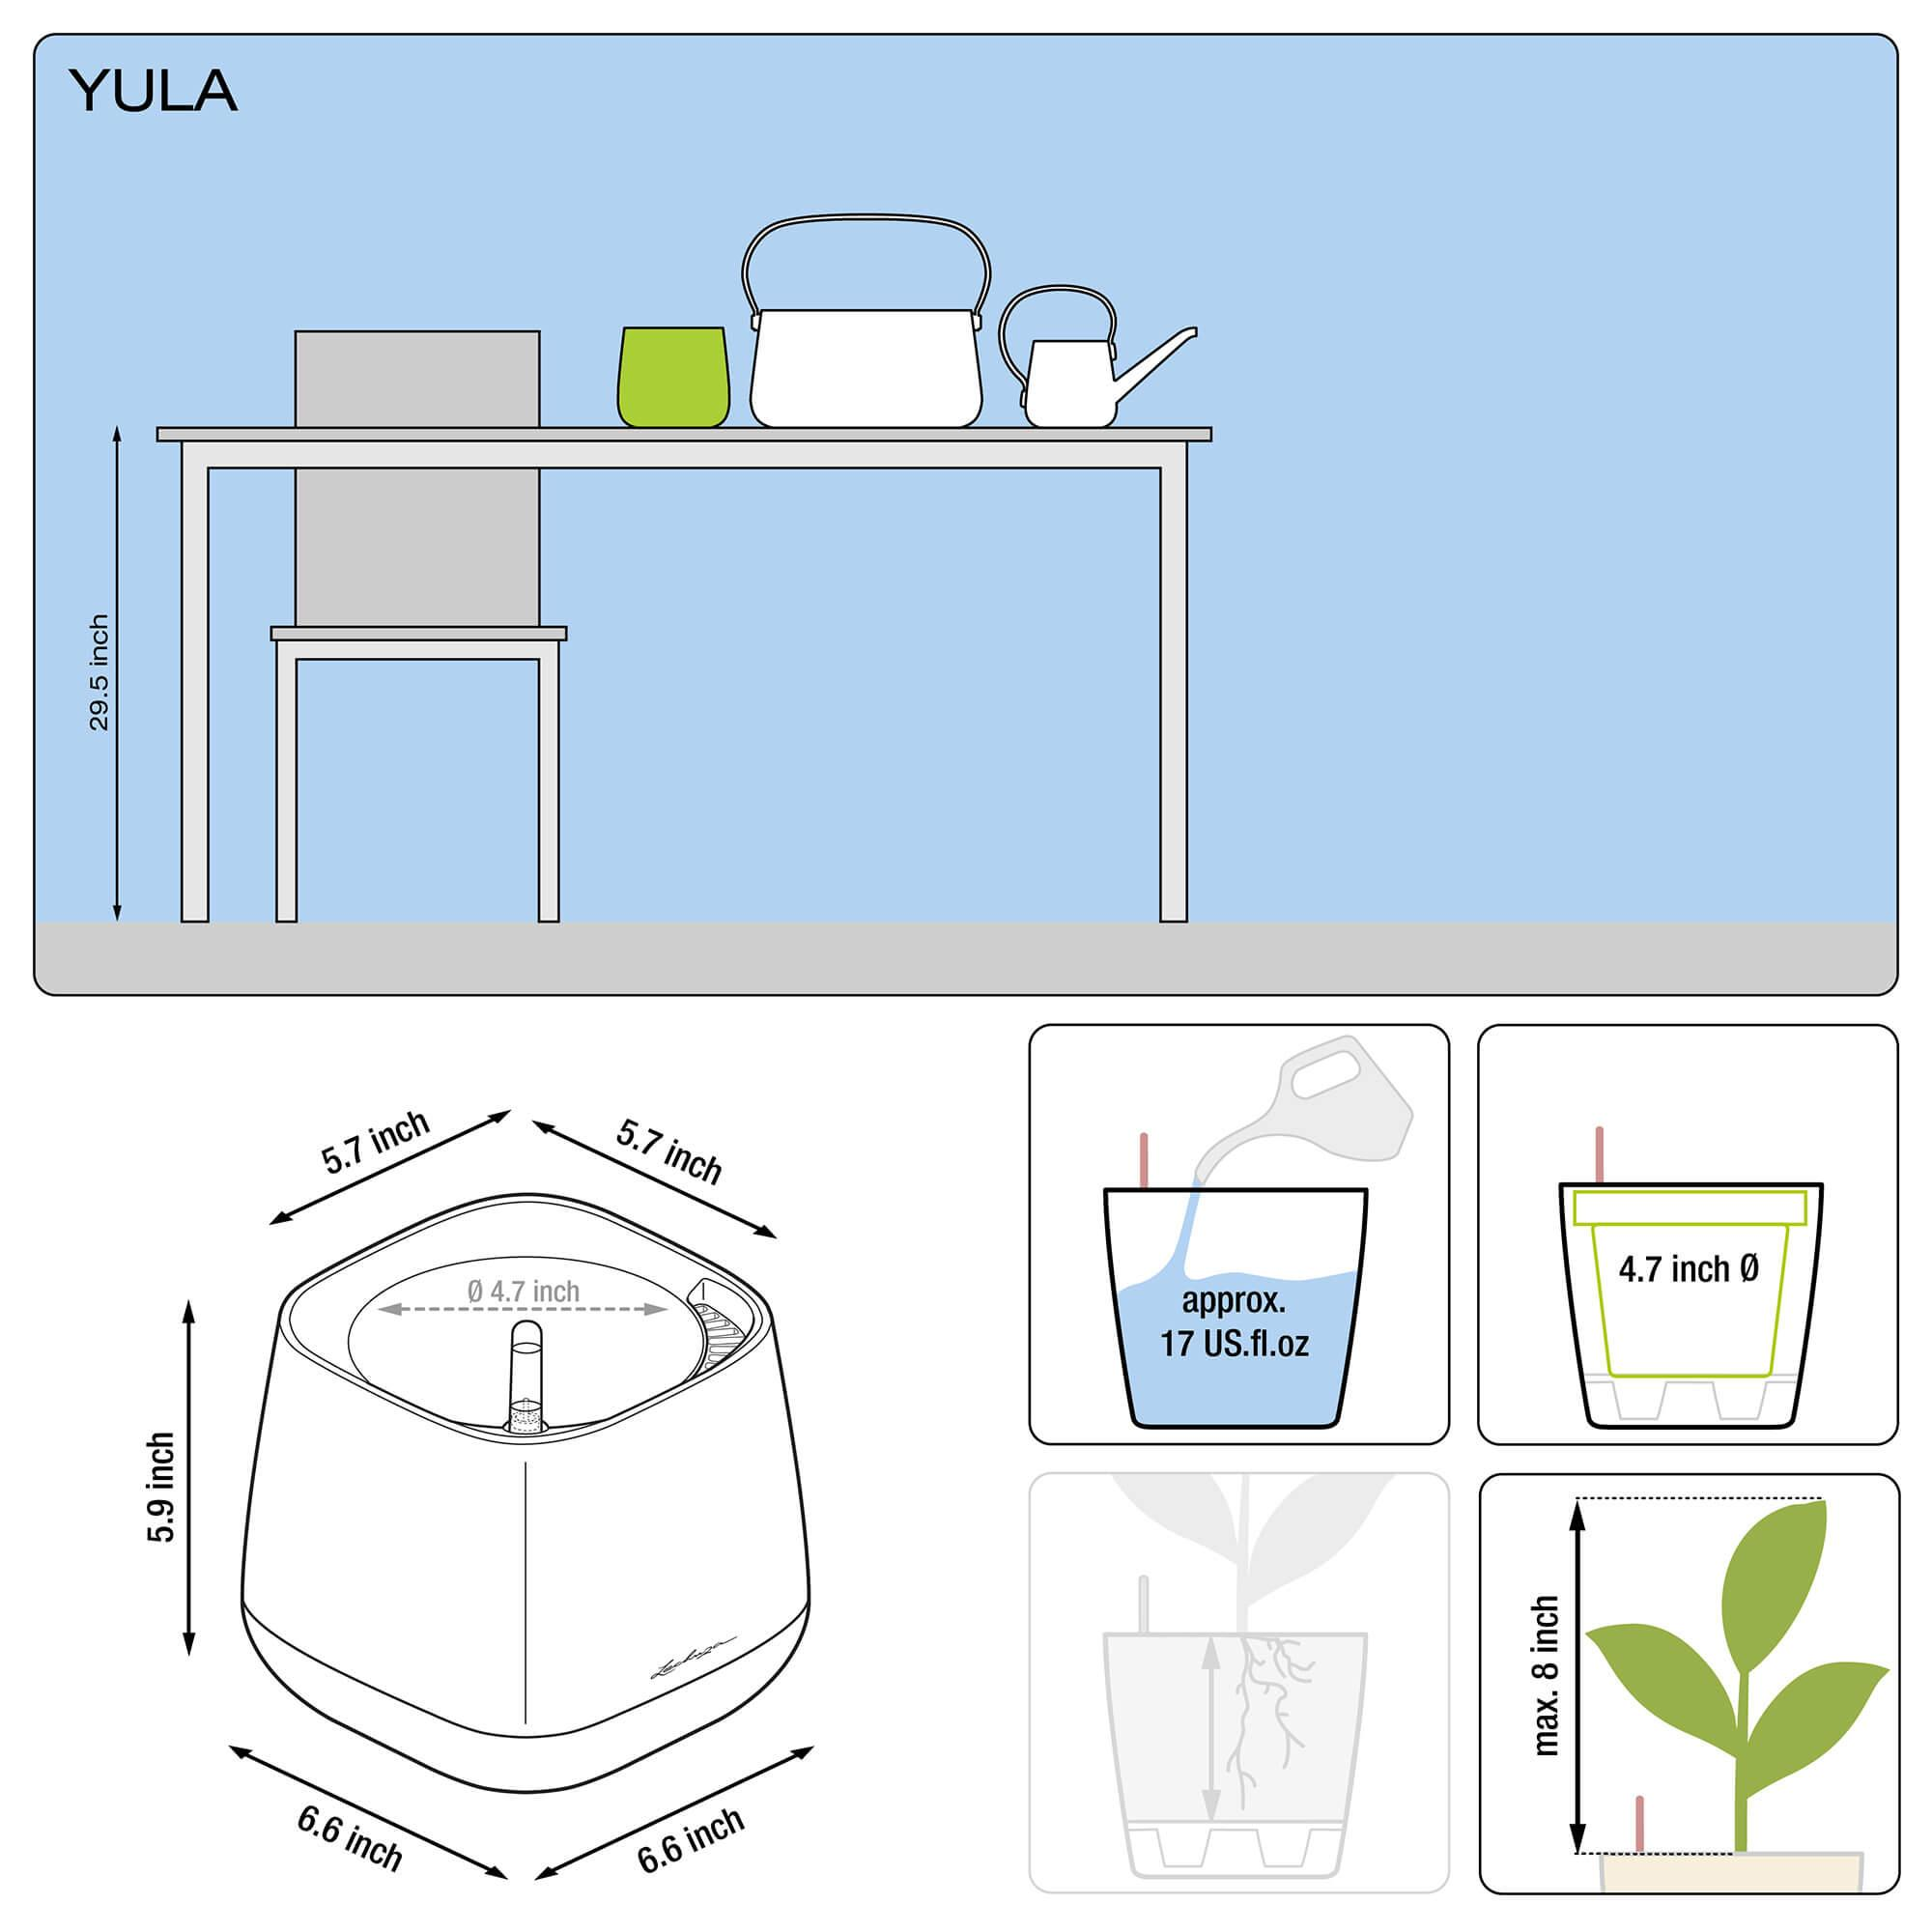 le_yula-pflanzgefaess_product_addi_nz_us